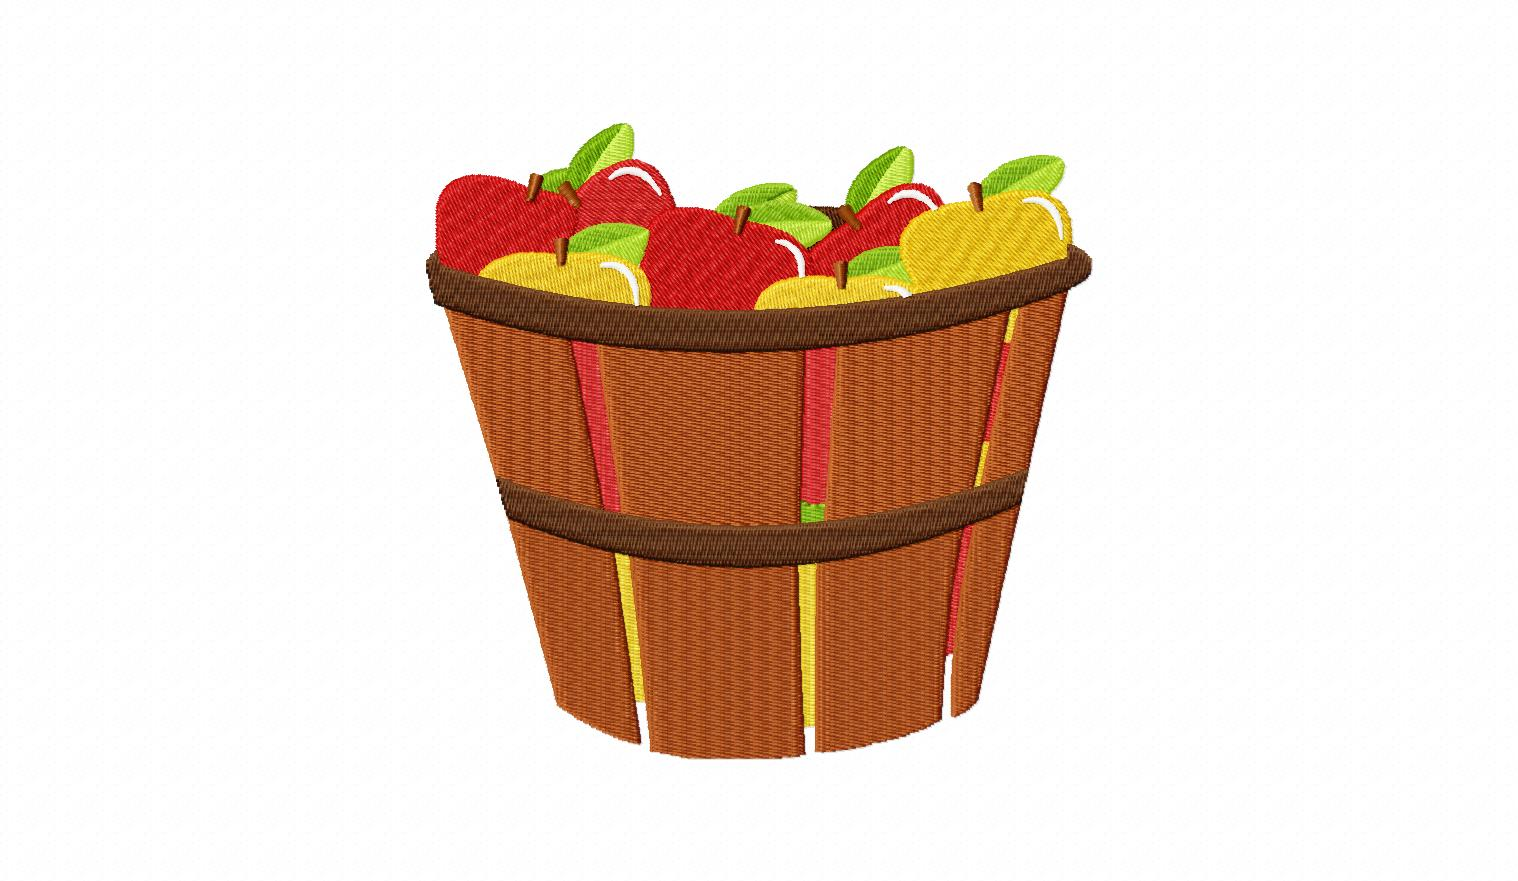 Basket clipart empty harvest Apples clipart in clipart collection